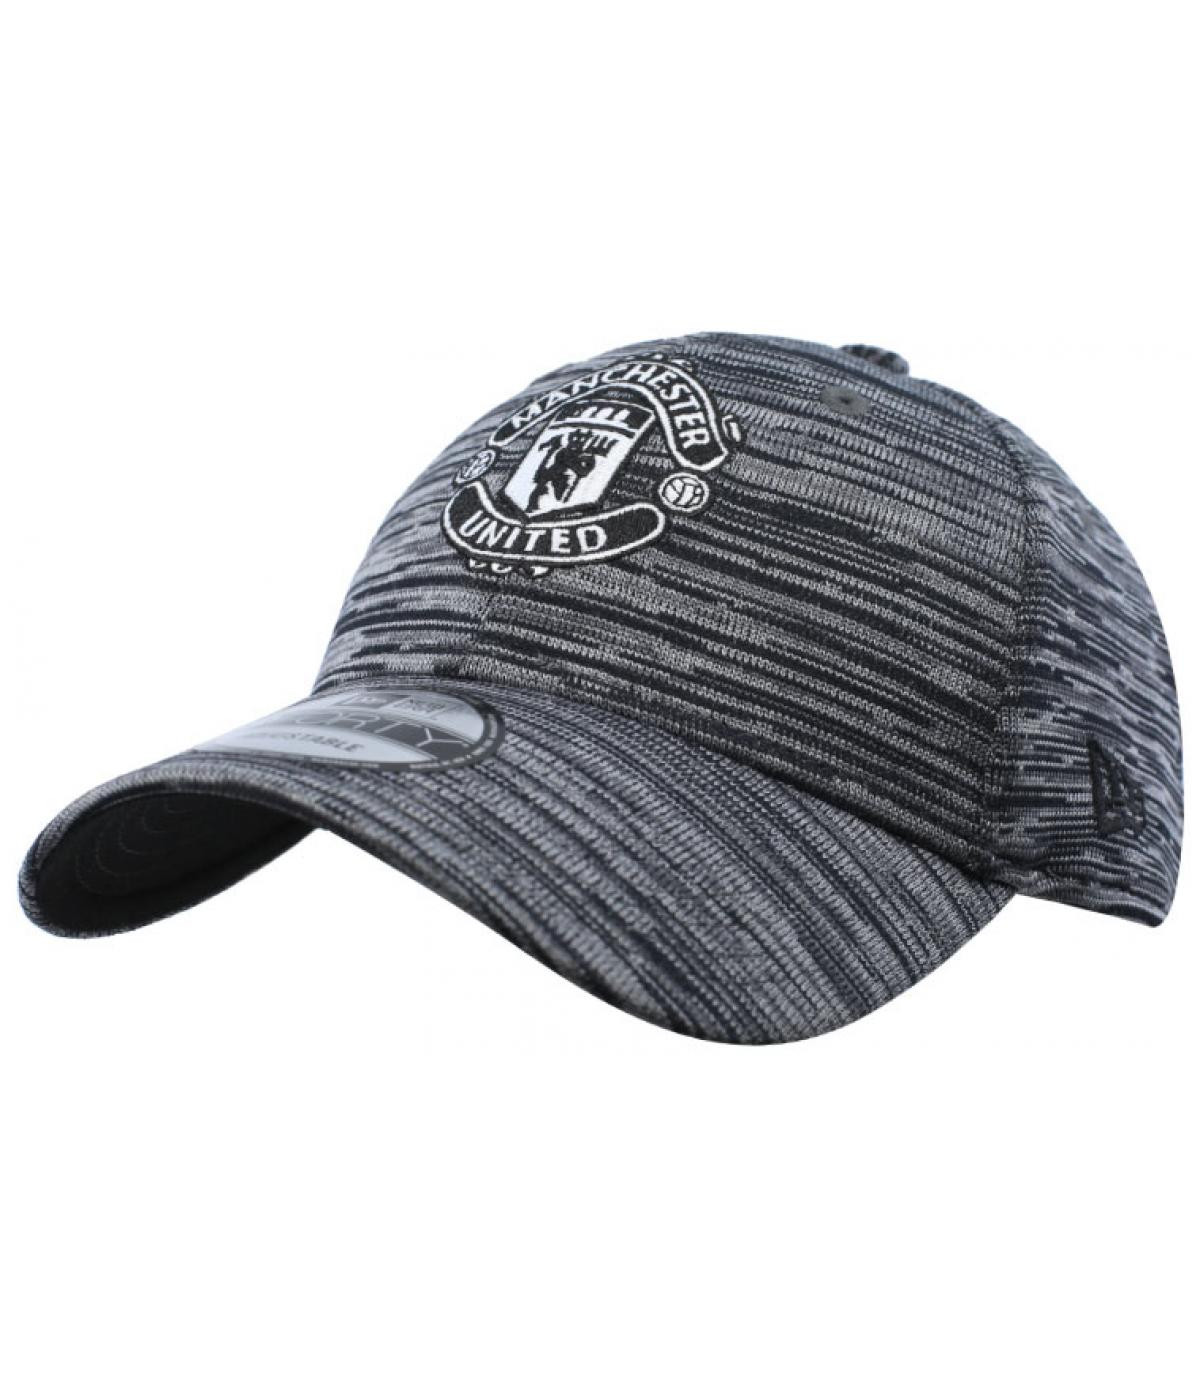 Détails Casquette Engineered 9Forty Manchester black - image 2